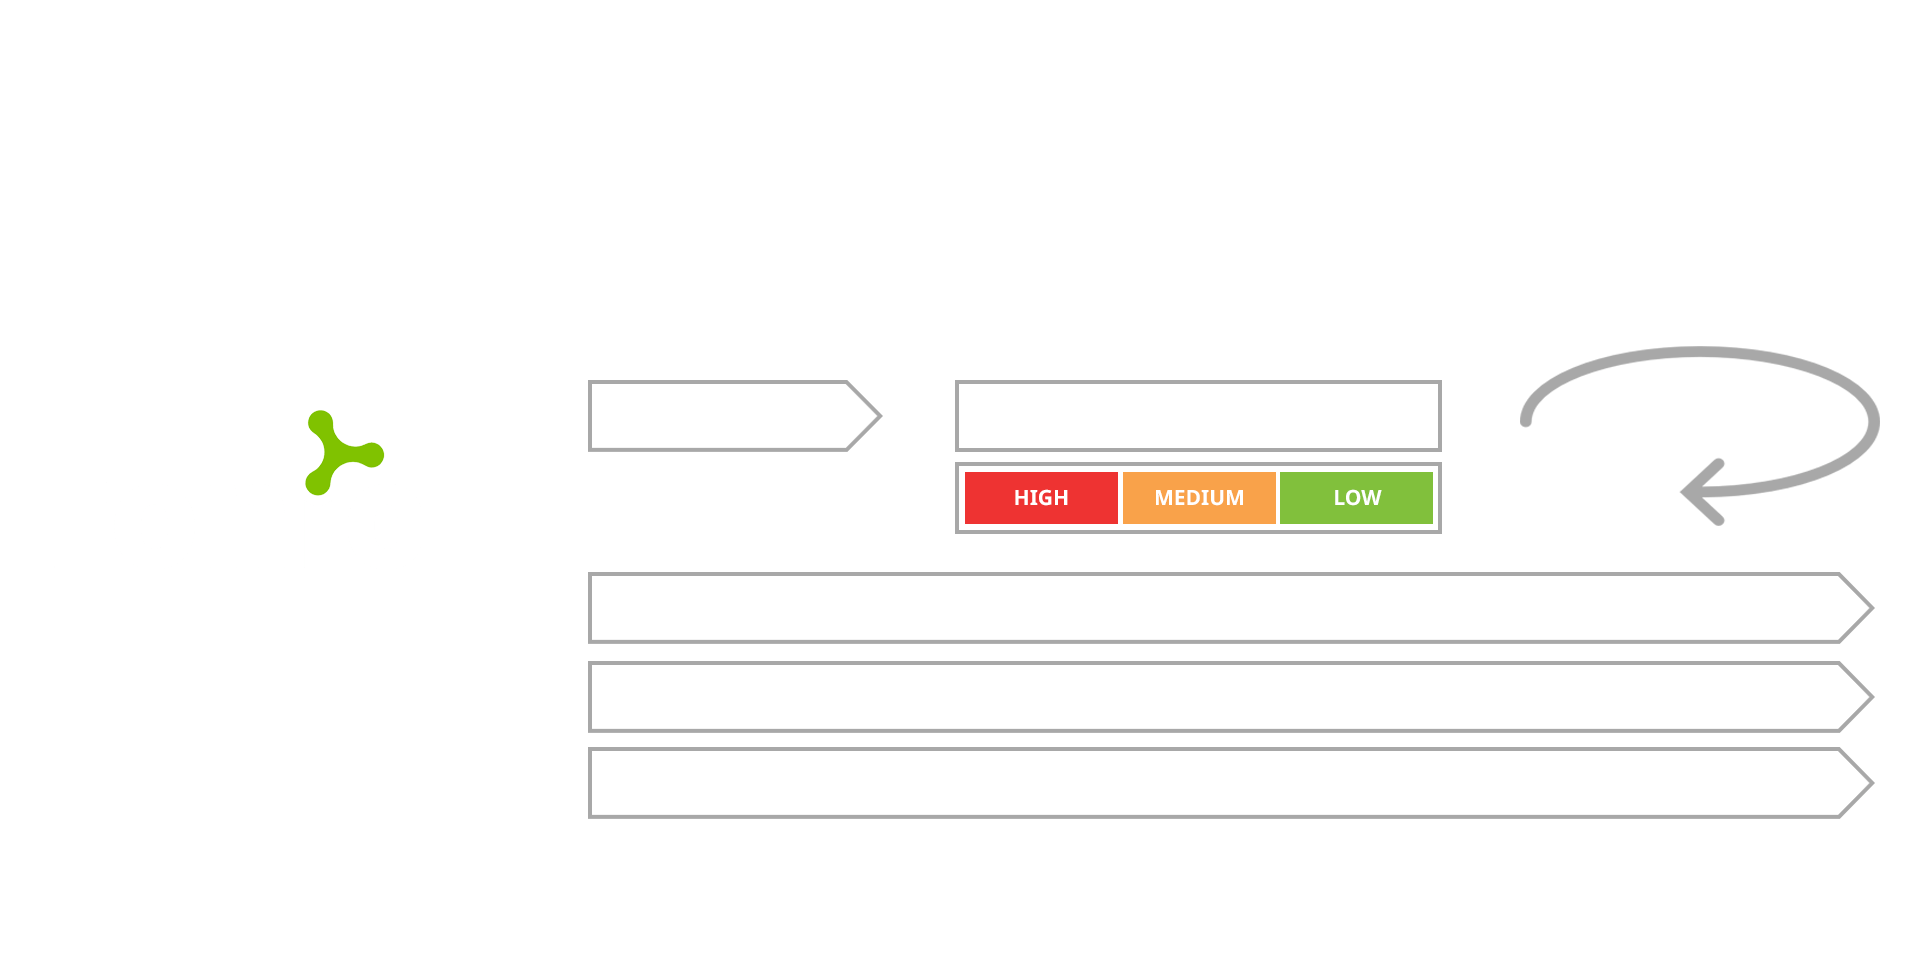 KYC and onbarding